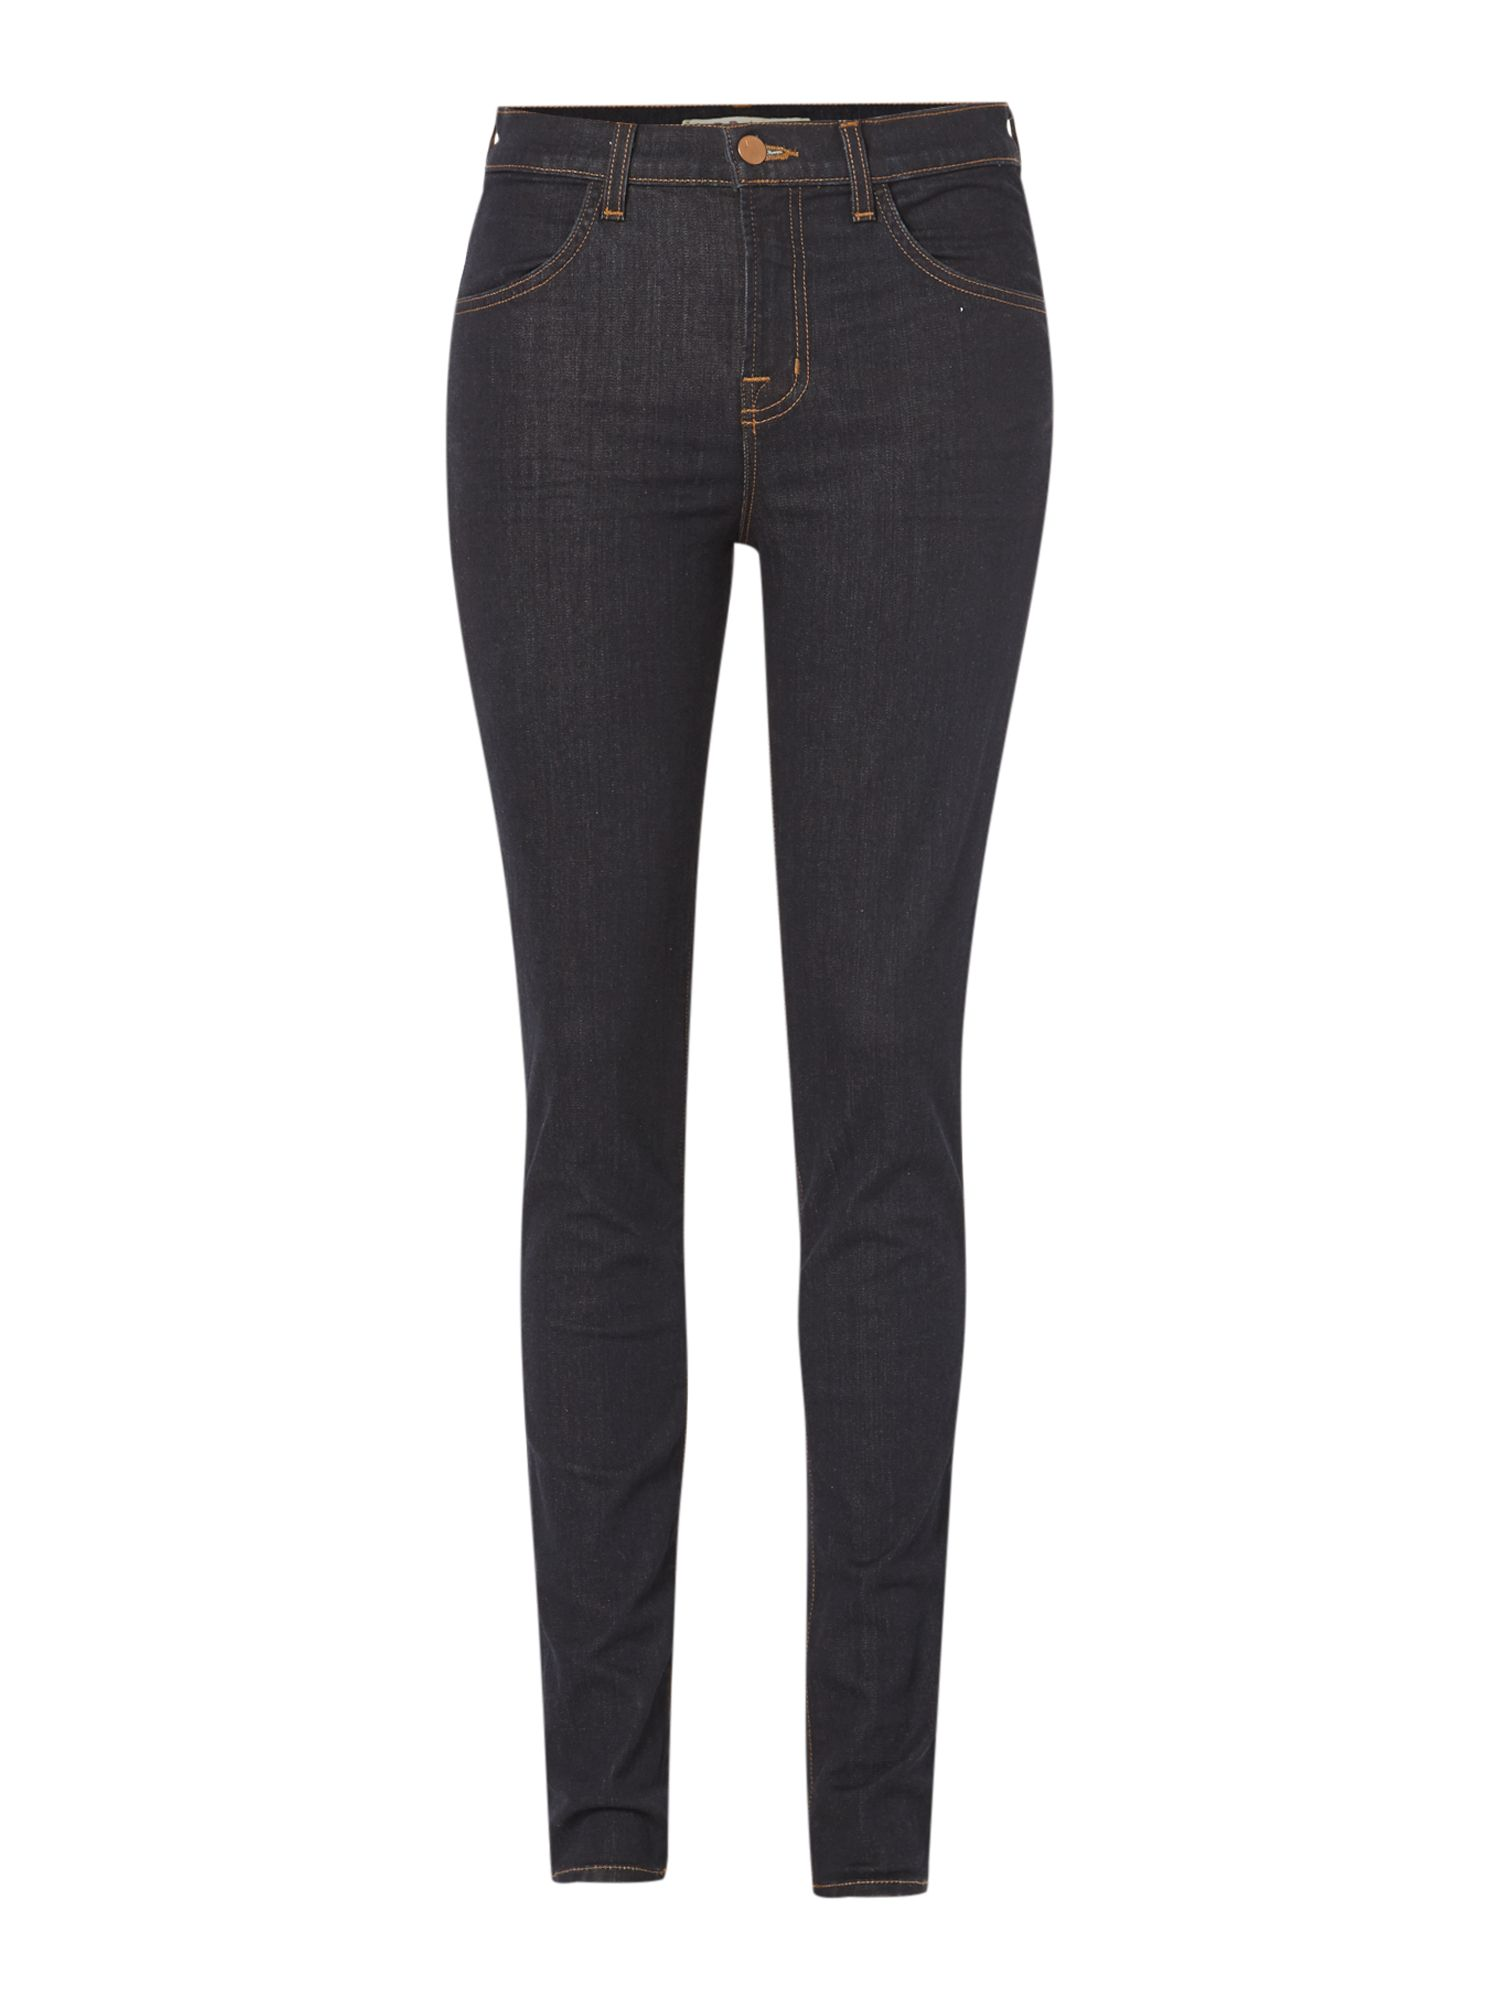 Maria high rise skinny jeans in Starless